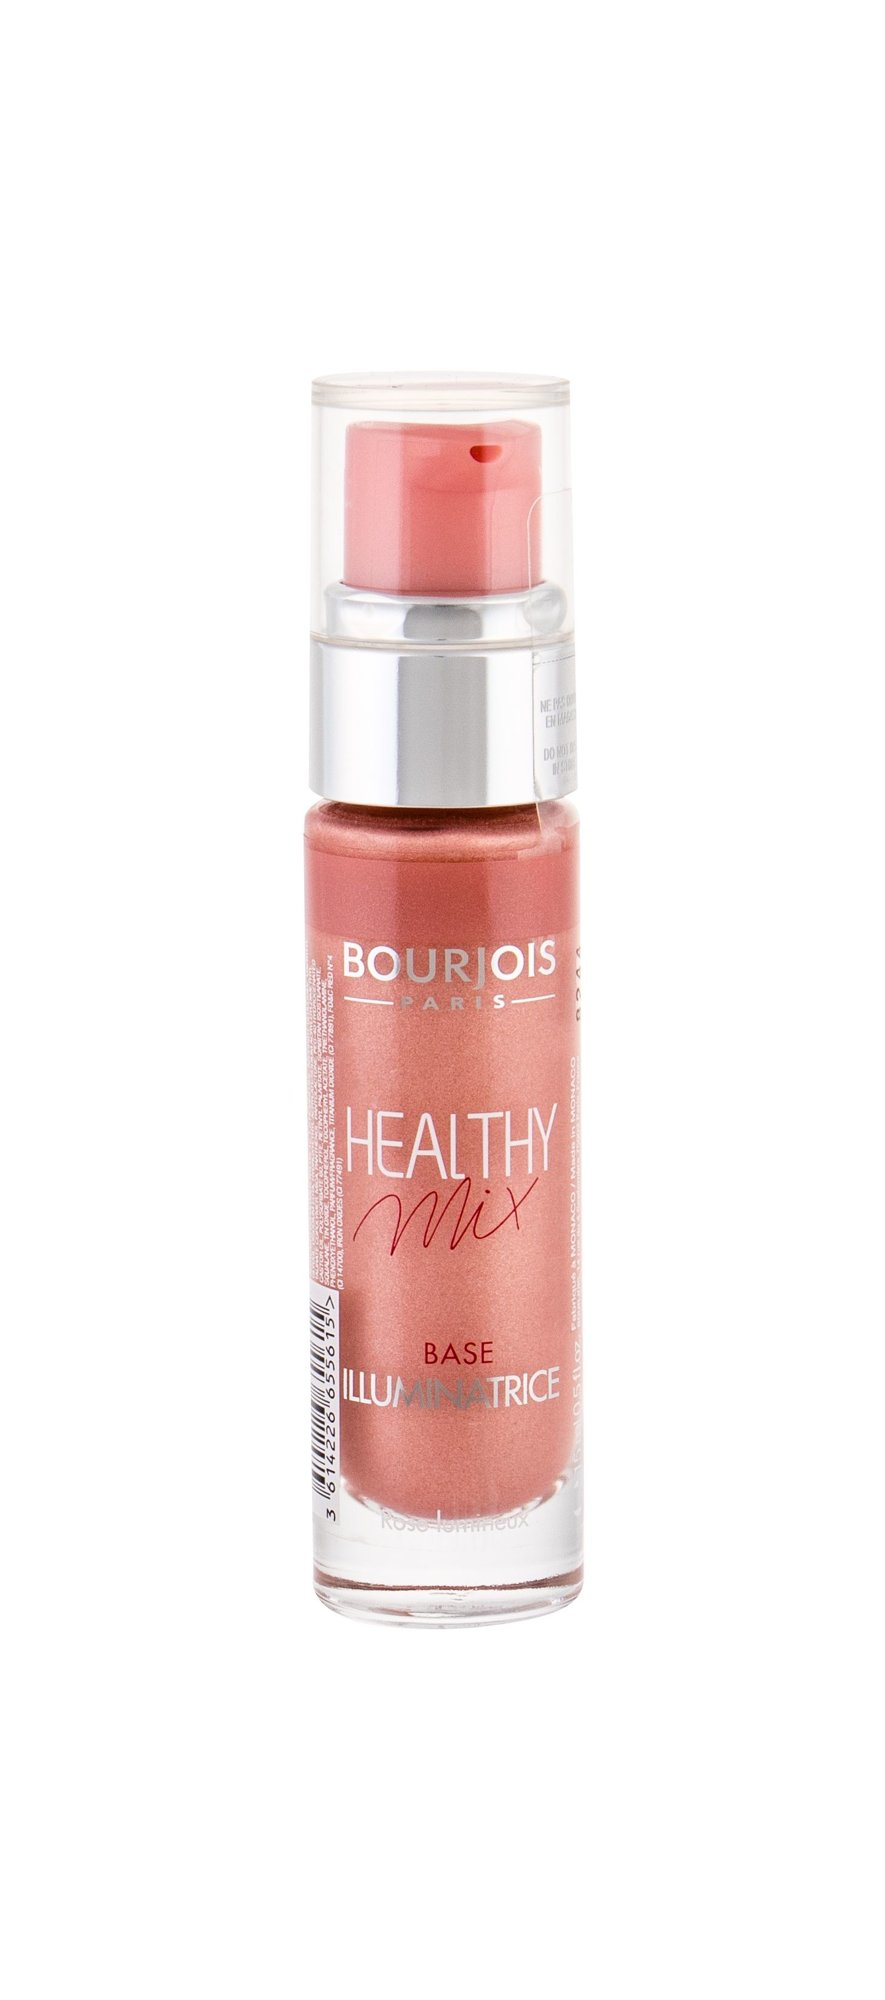 BOURJOIS Paris Healthy Mix Makeup Primer 15ml 01 Pink Radiant